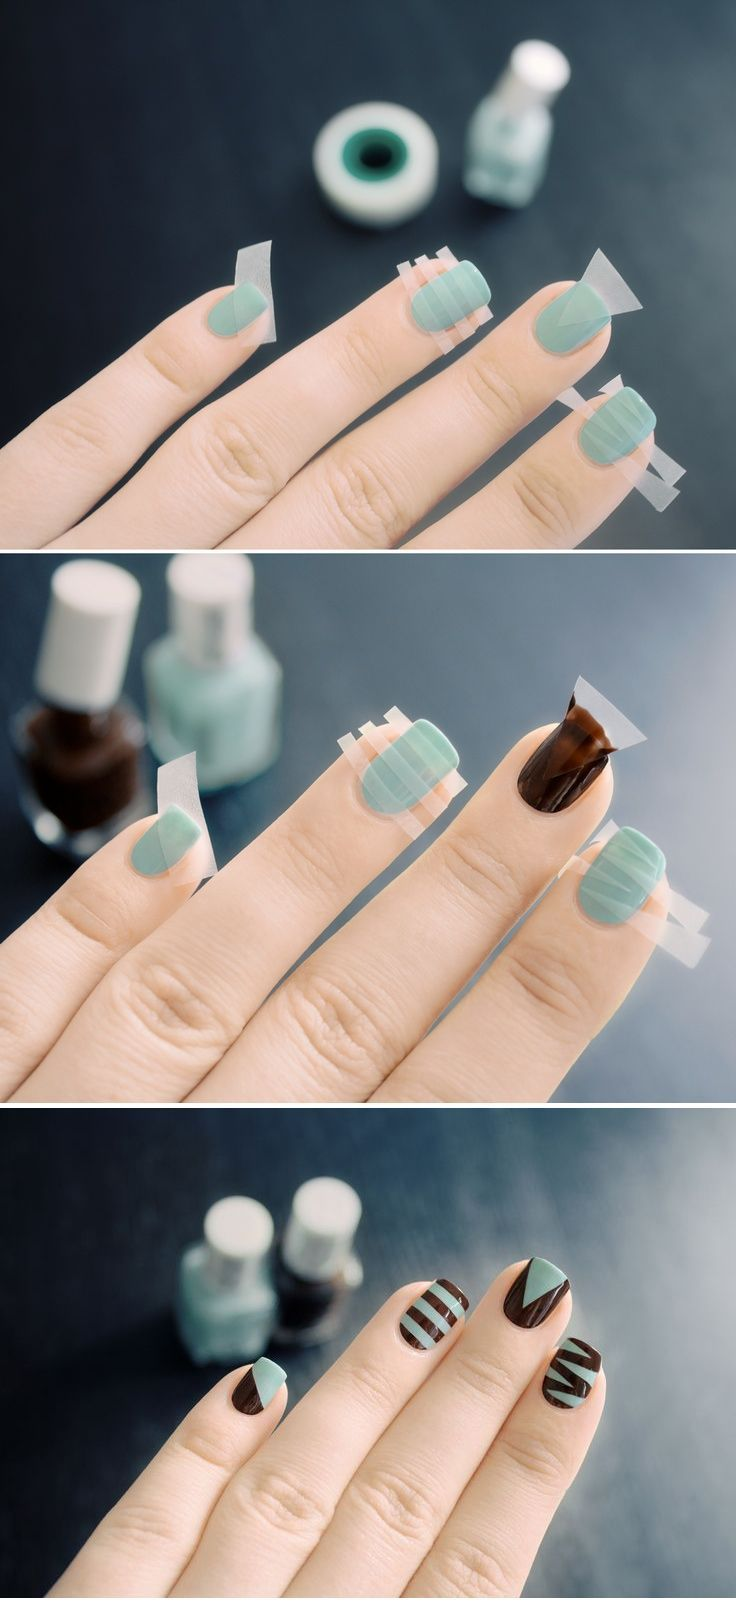 Nail tricks for patterns